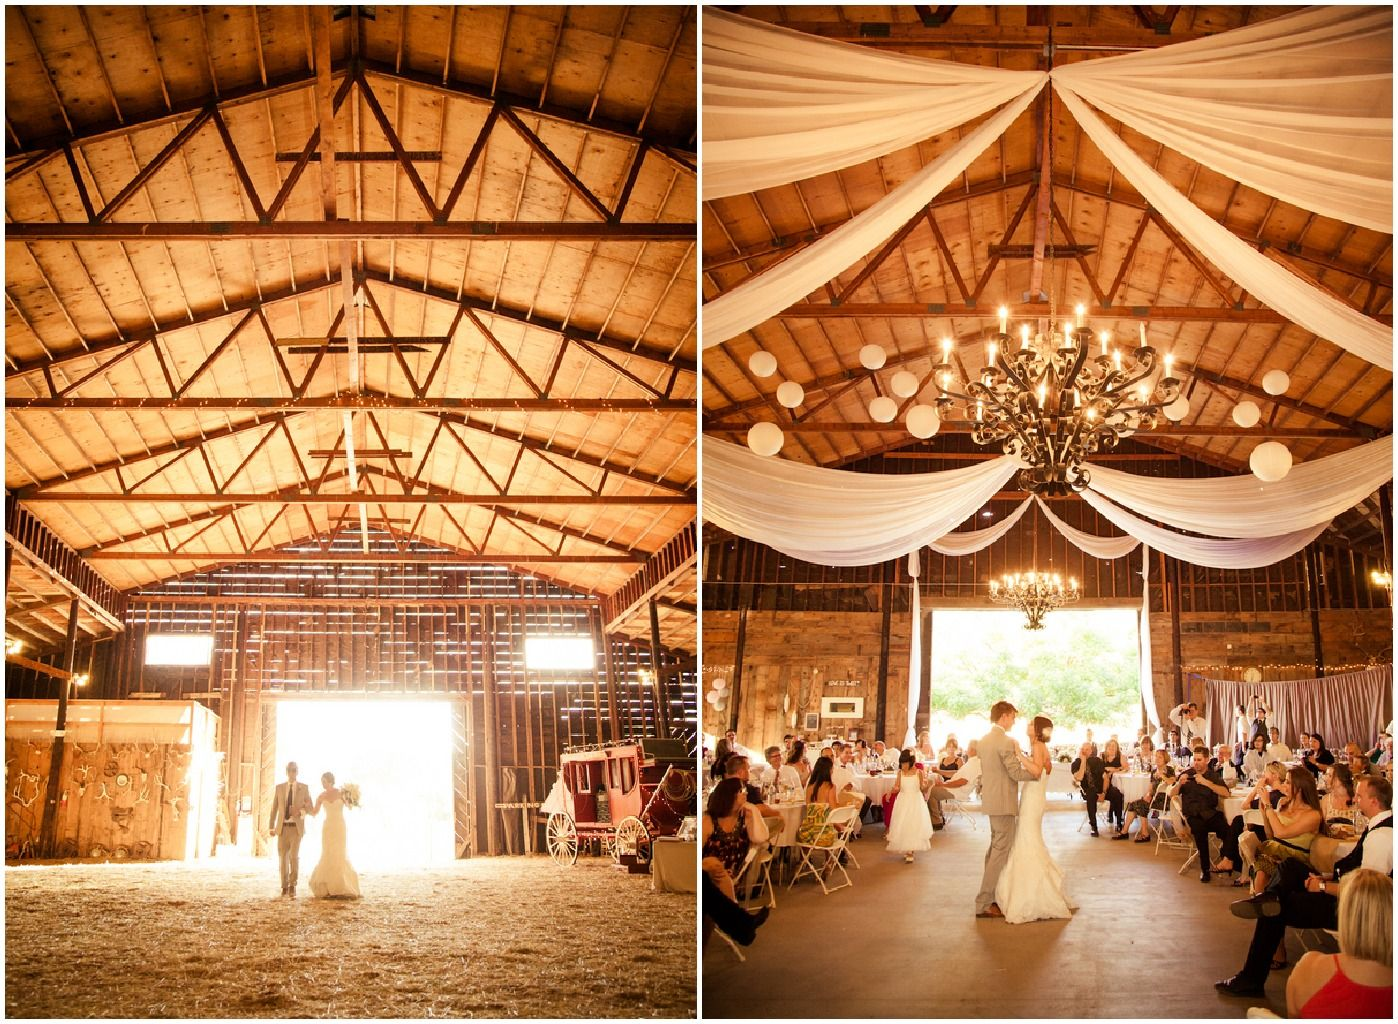 Northern california barn wedding barn weddings wedding for Rustic barn designs